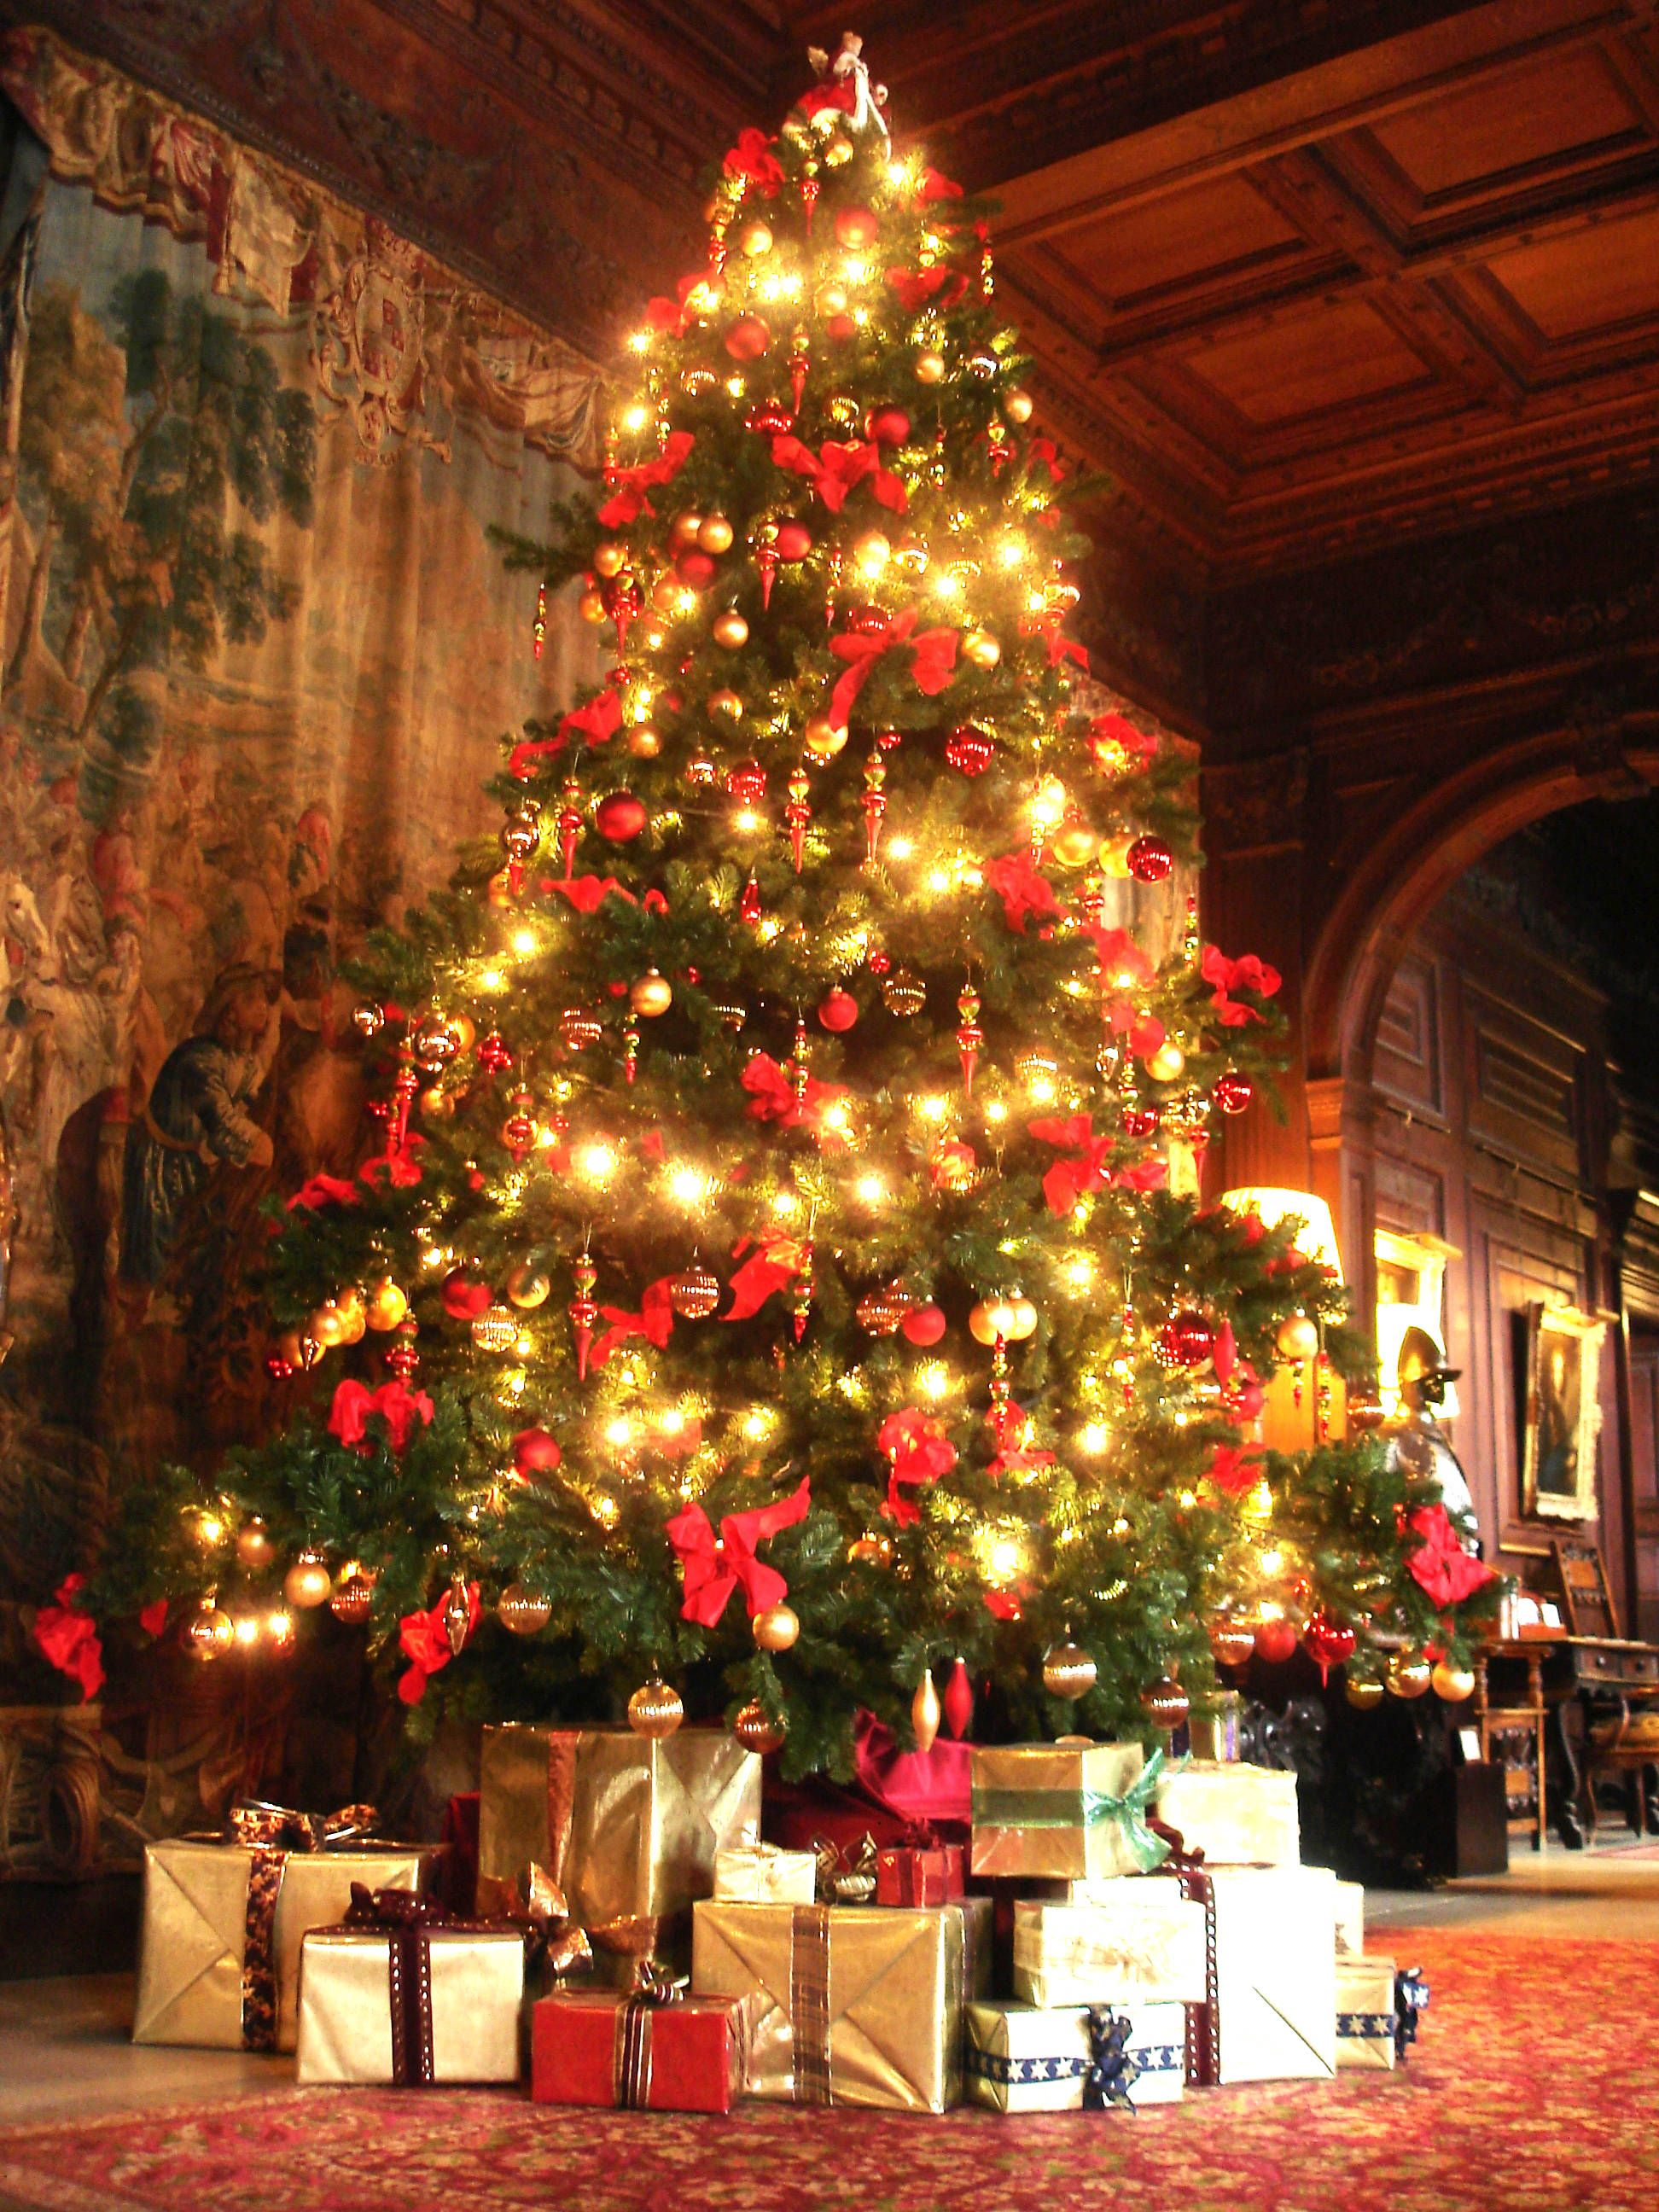 England Christmas Tree.Celebrate Christmas At A Country House In The United Kingdom